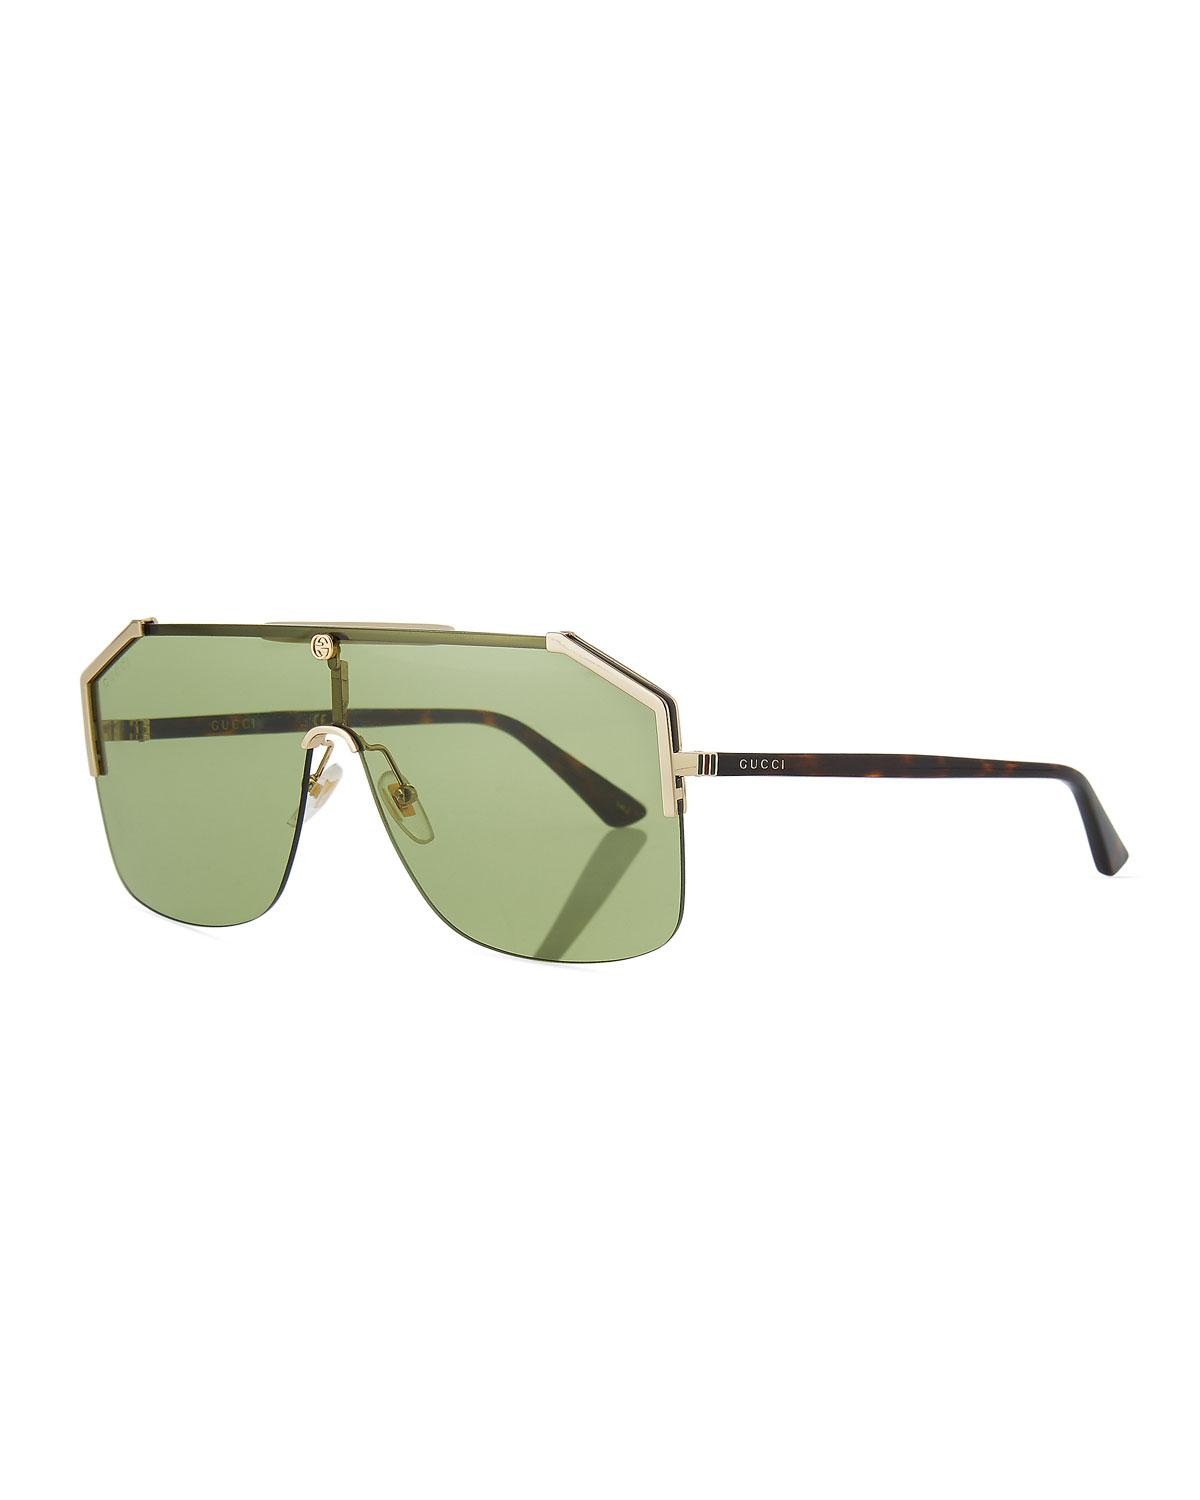 1ade56b43f9 Lyst - Gucci Geometric Metal Shield Sunglasses for Men